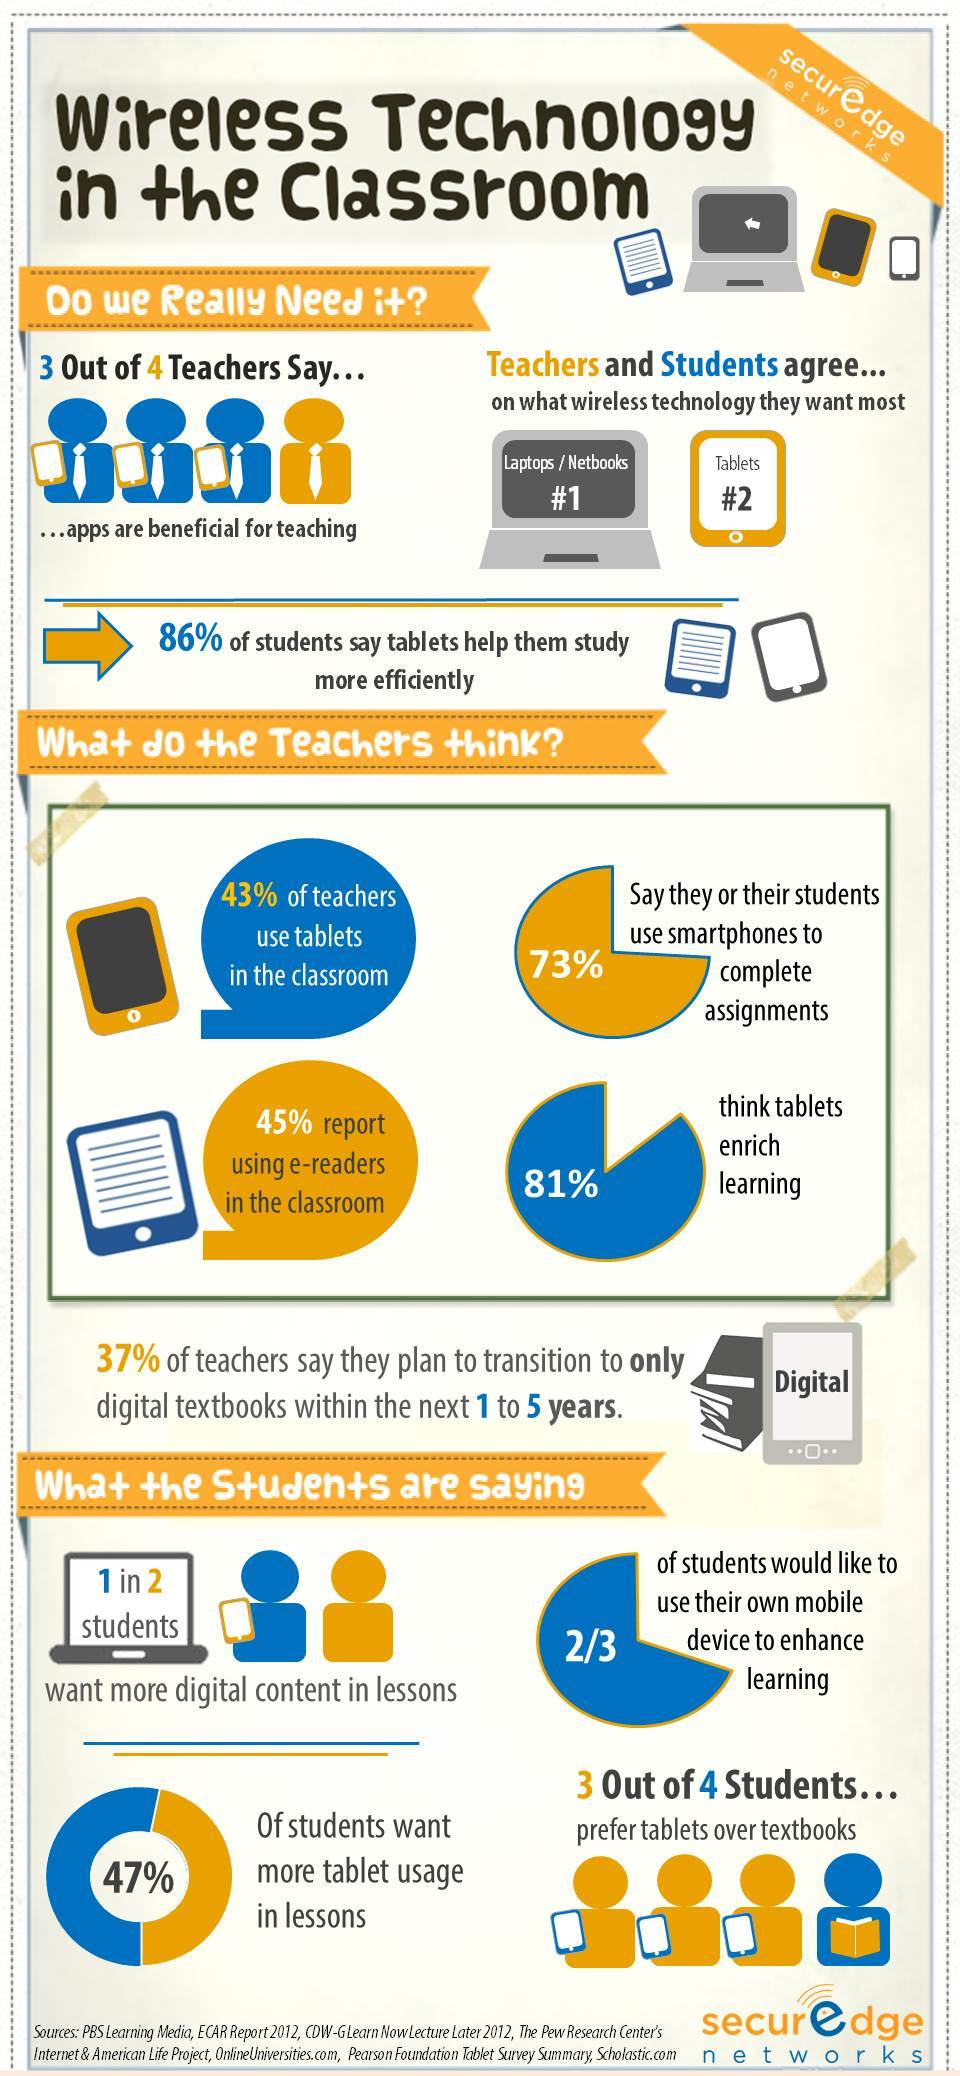 Wireless Technology in the Classroom 101: Infographic